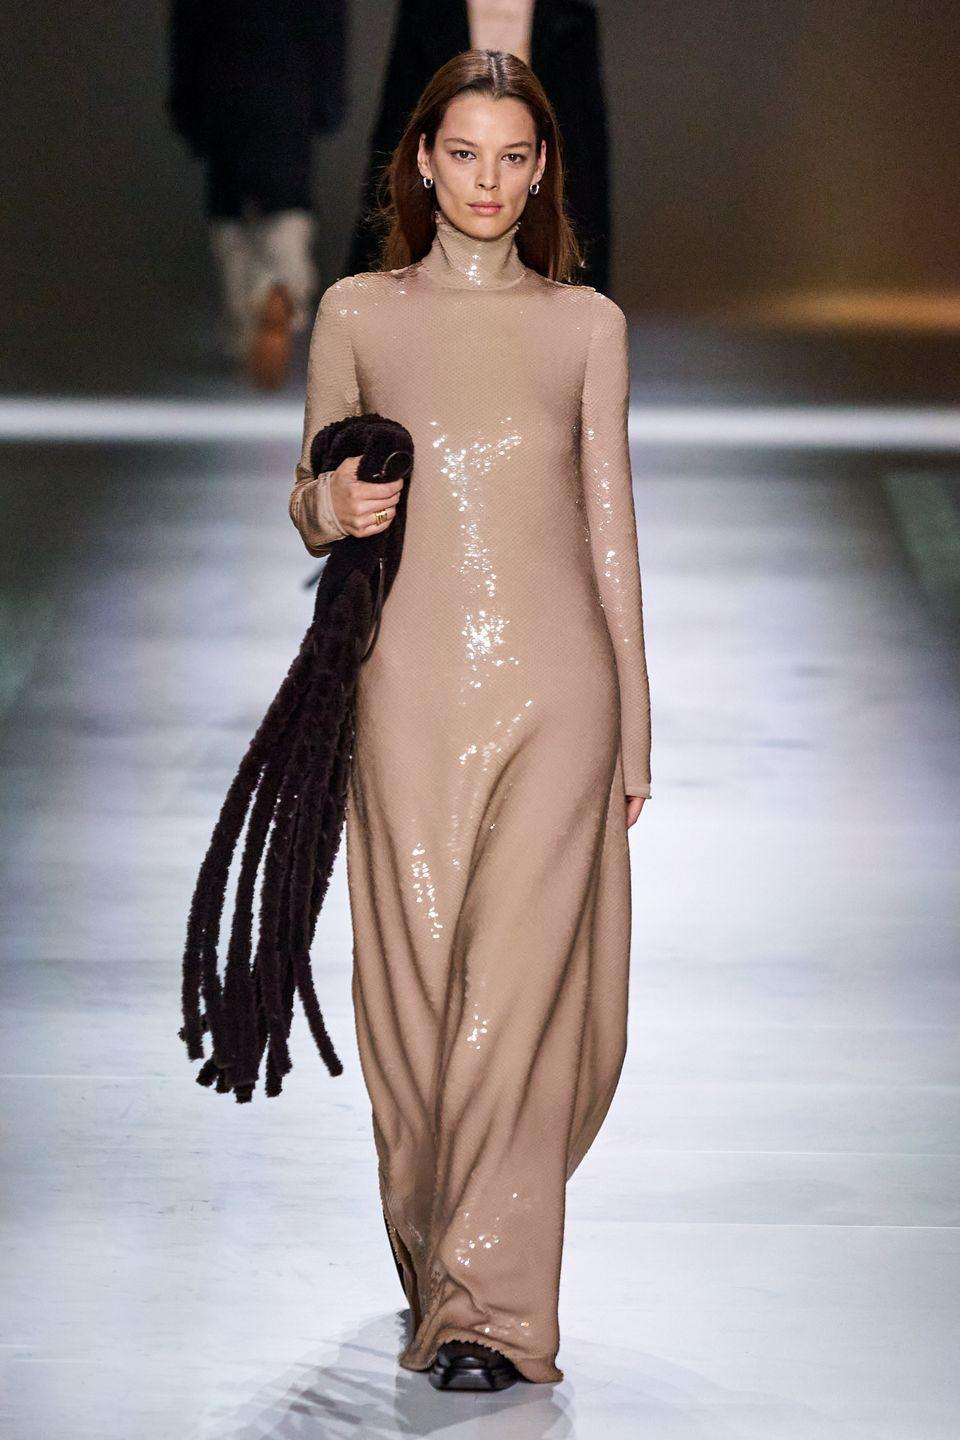 <p>Column gowns are here to be your new favorite winter outfit when you don't feel like wearing pants or tights.</p><p><em>Bottega Veneta<br></em></p>